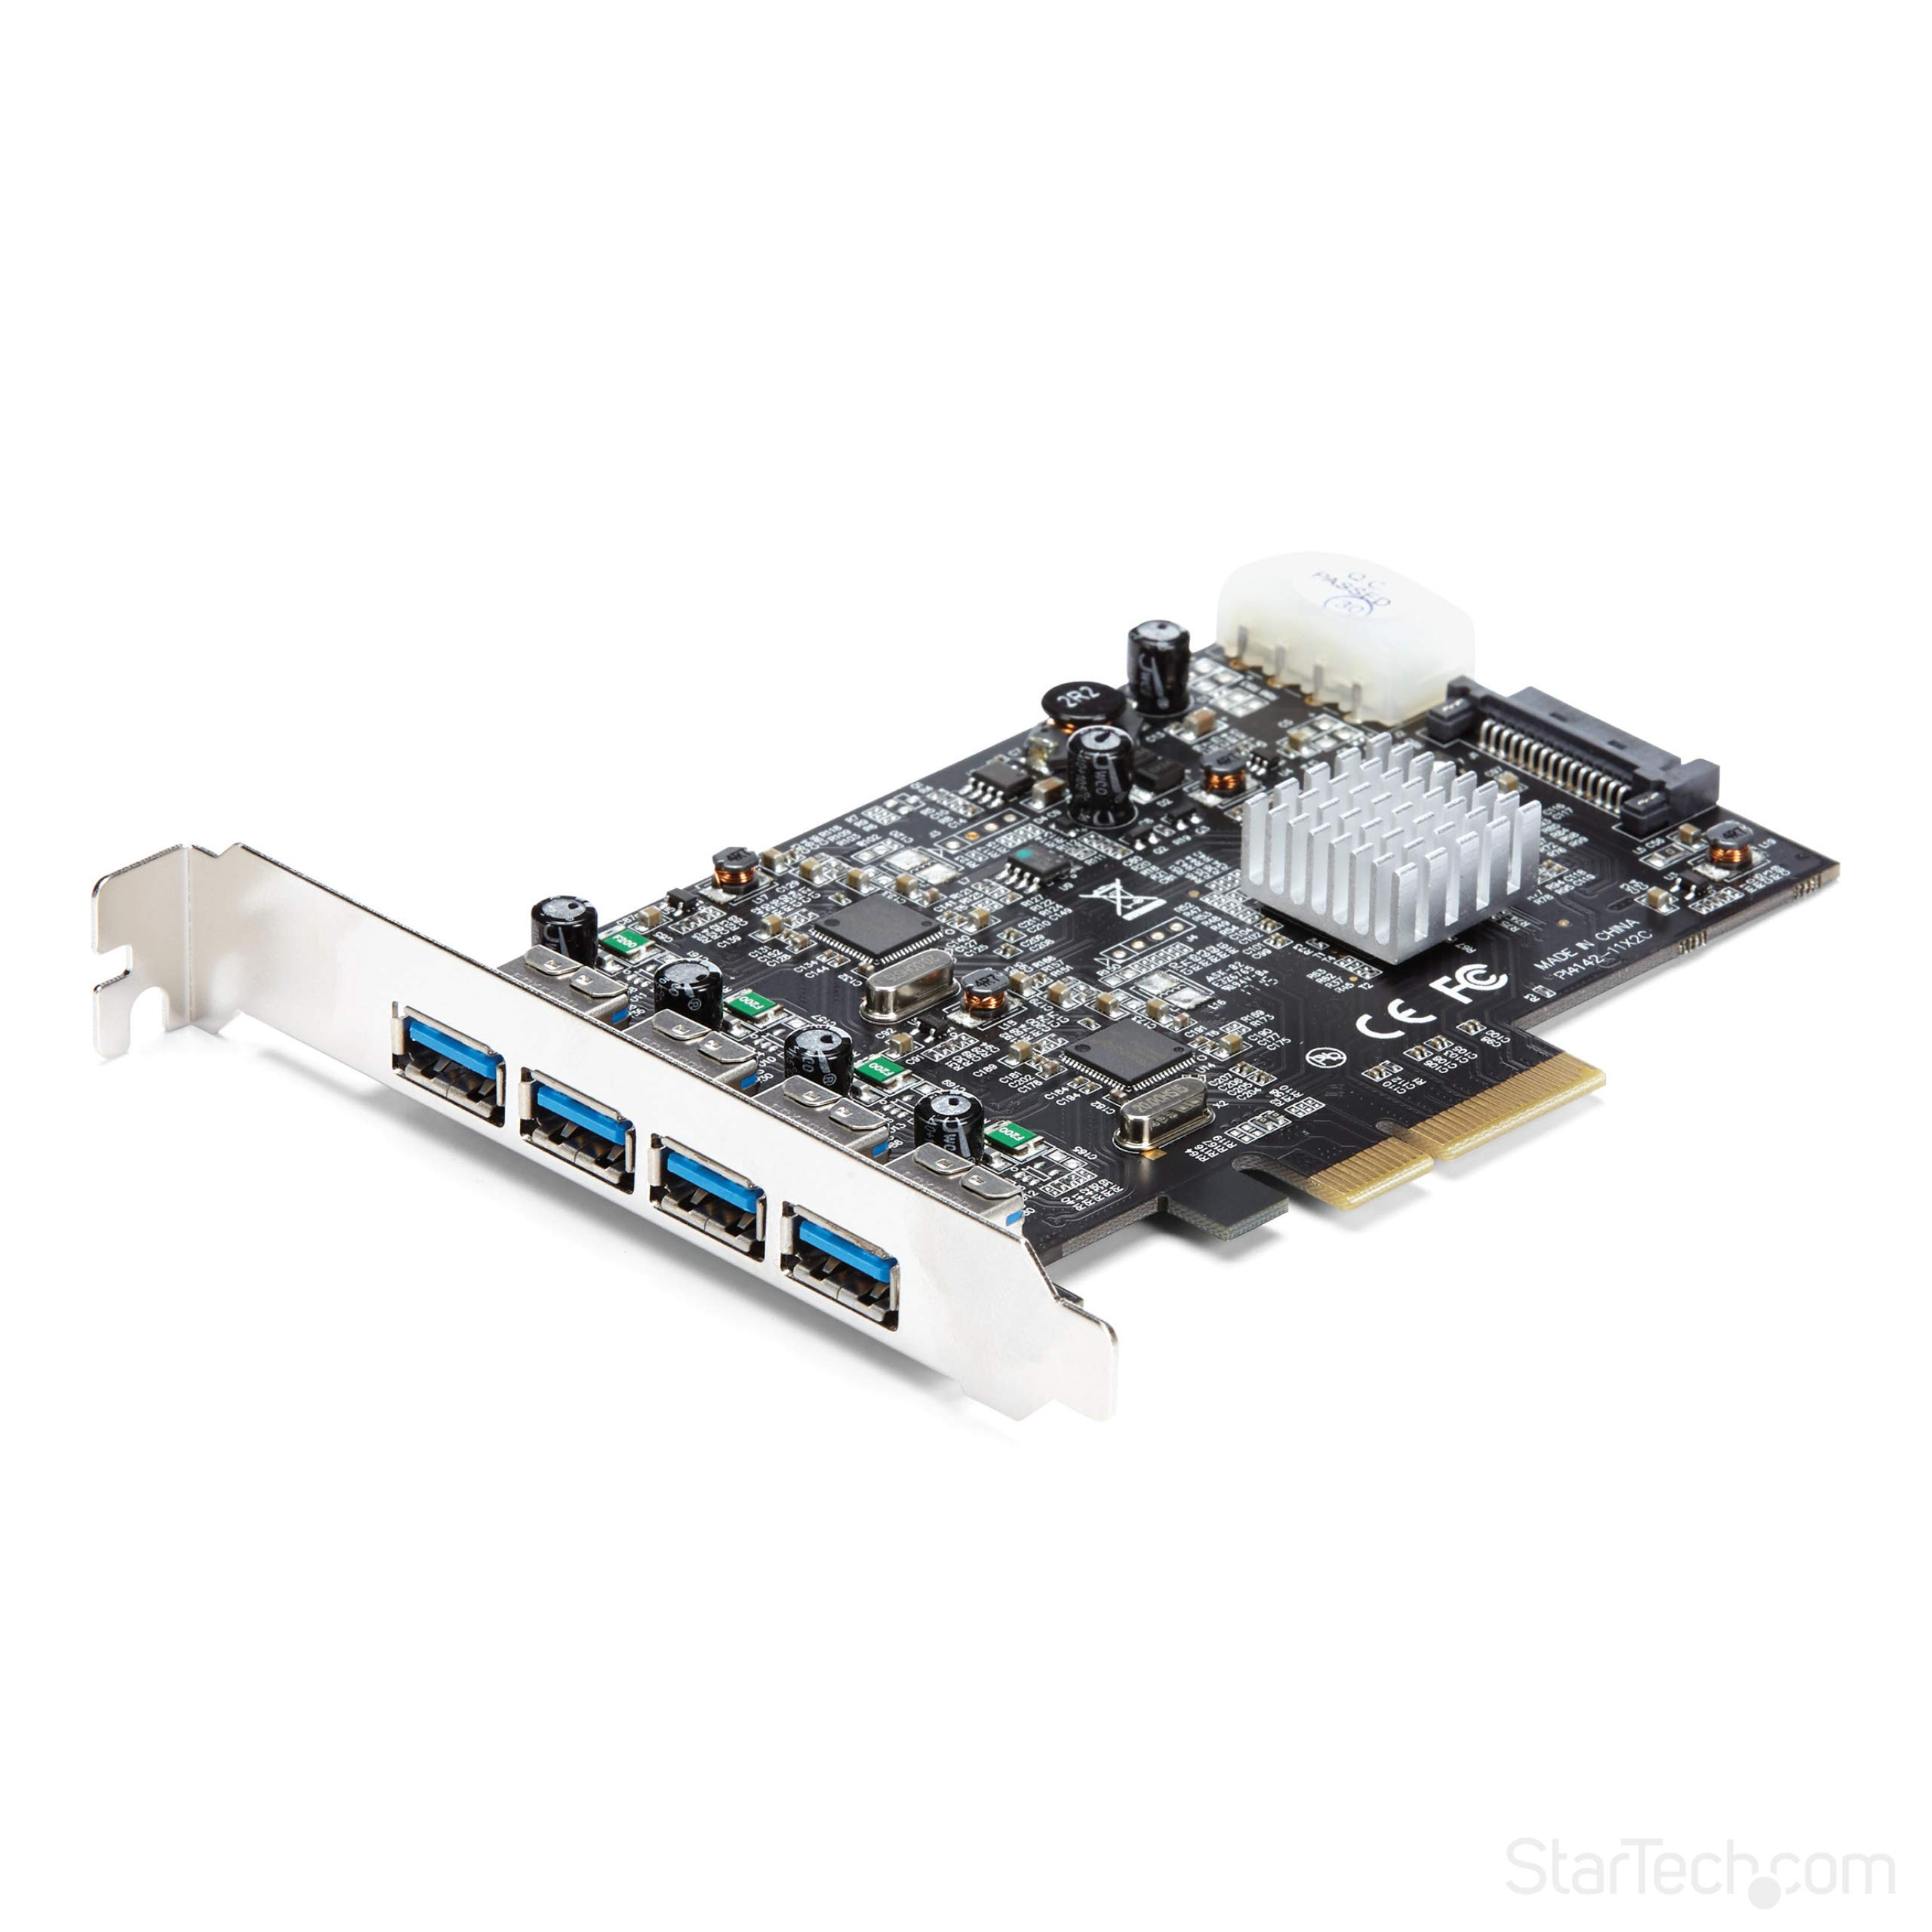 StarTech.com 4 Port USB 3.1 PCI-e Card - 10Gbps - 4X USB w/Two Dedicated Channels - PCI Express Expansion Card/Adapter (PEXUSB314A2V) by StarTech